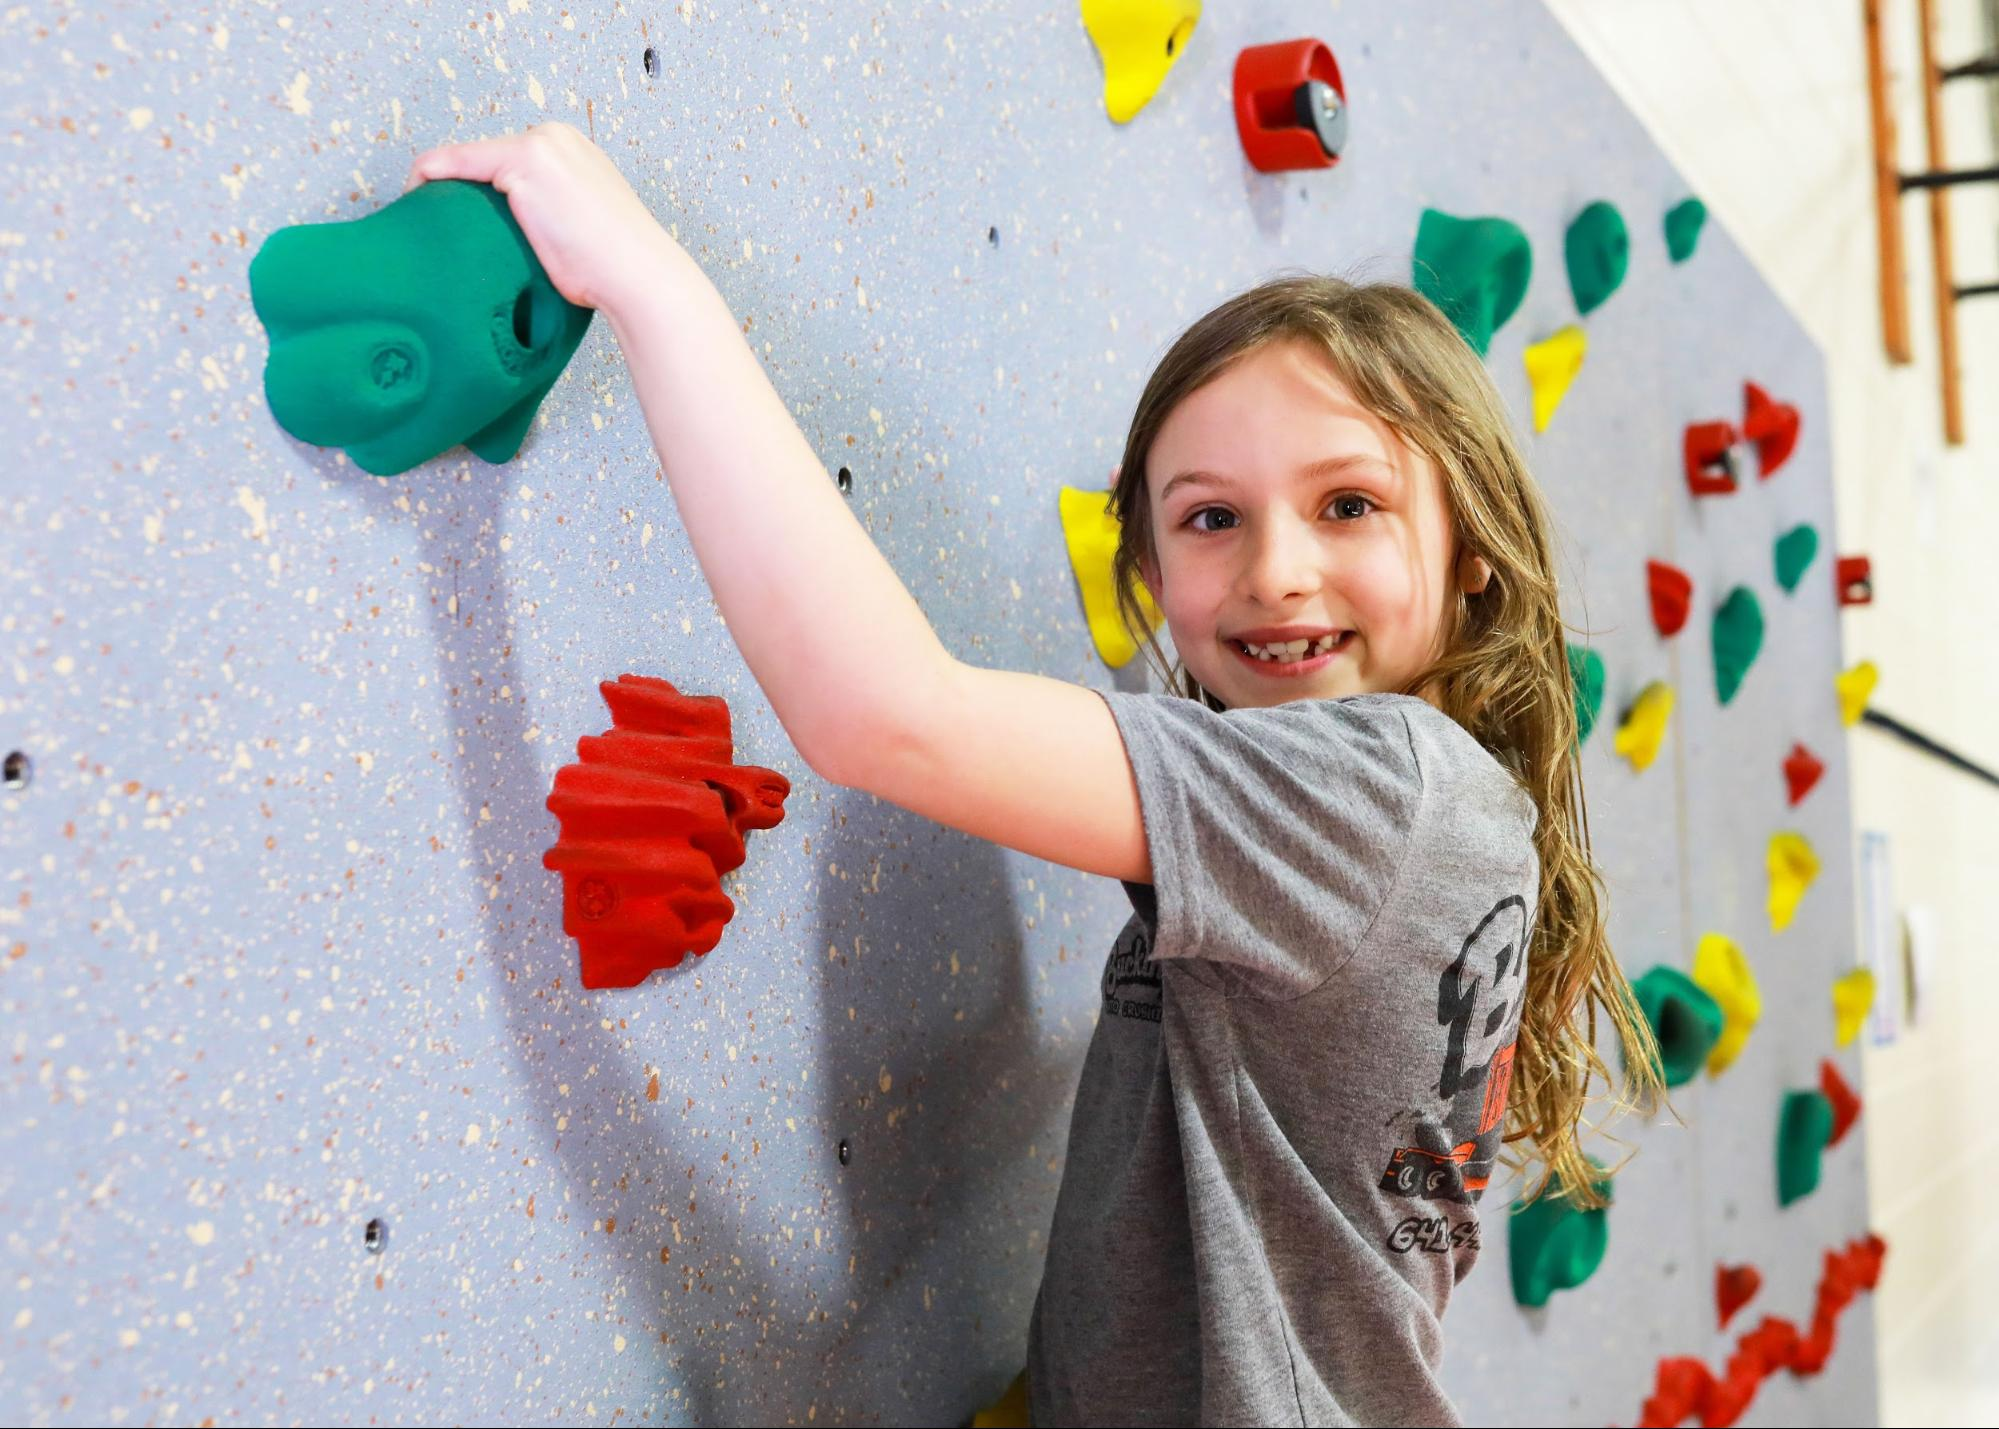 Elementary student on a climbing wall